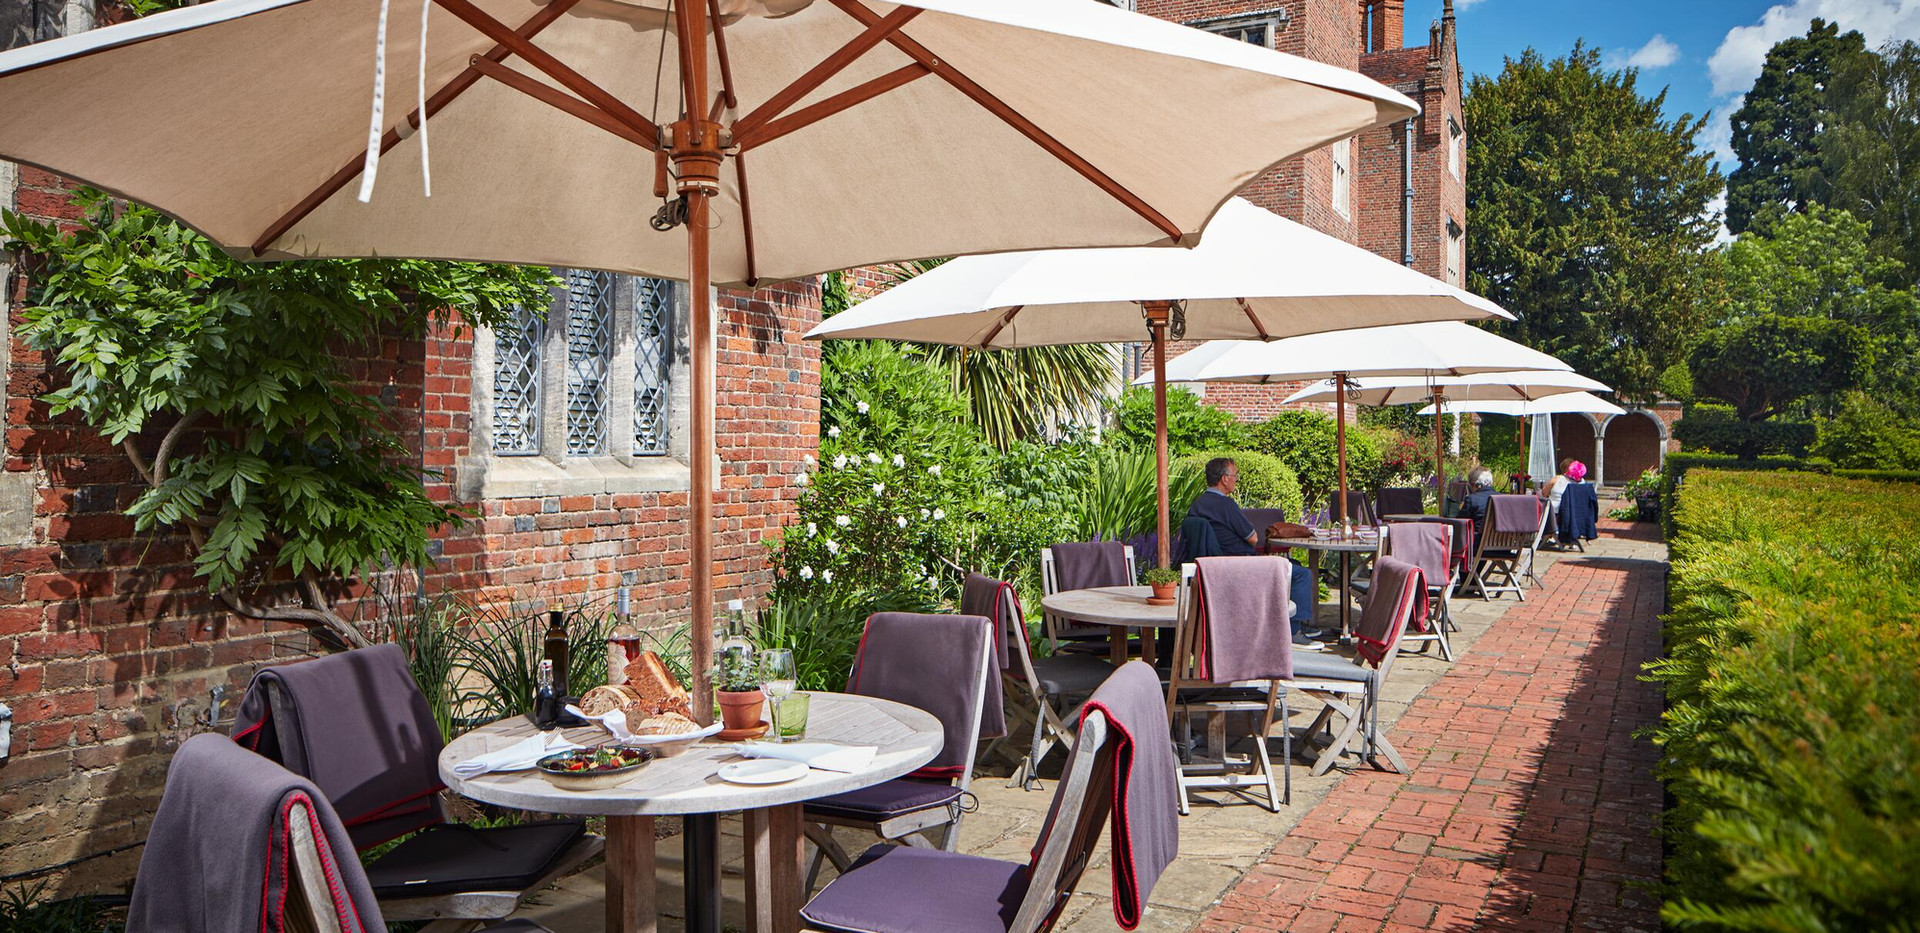 The Terrace at Great Fosters